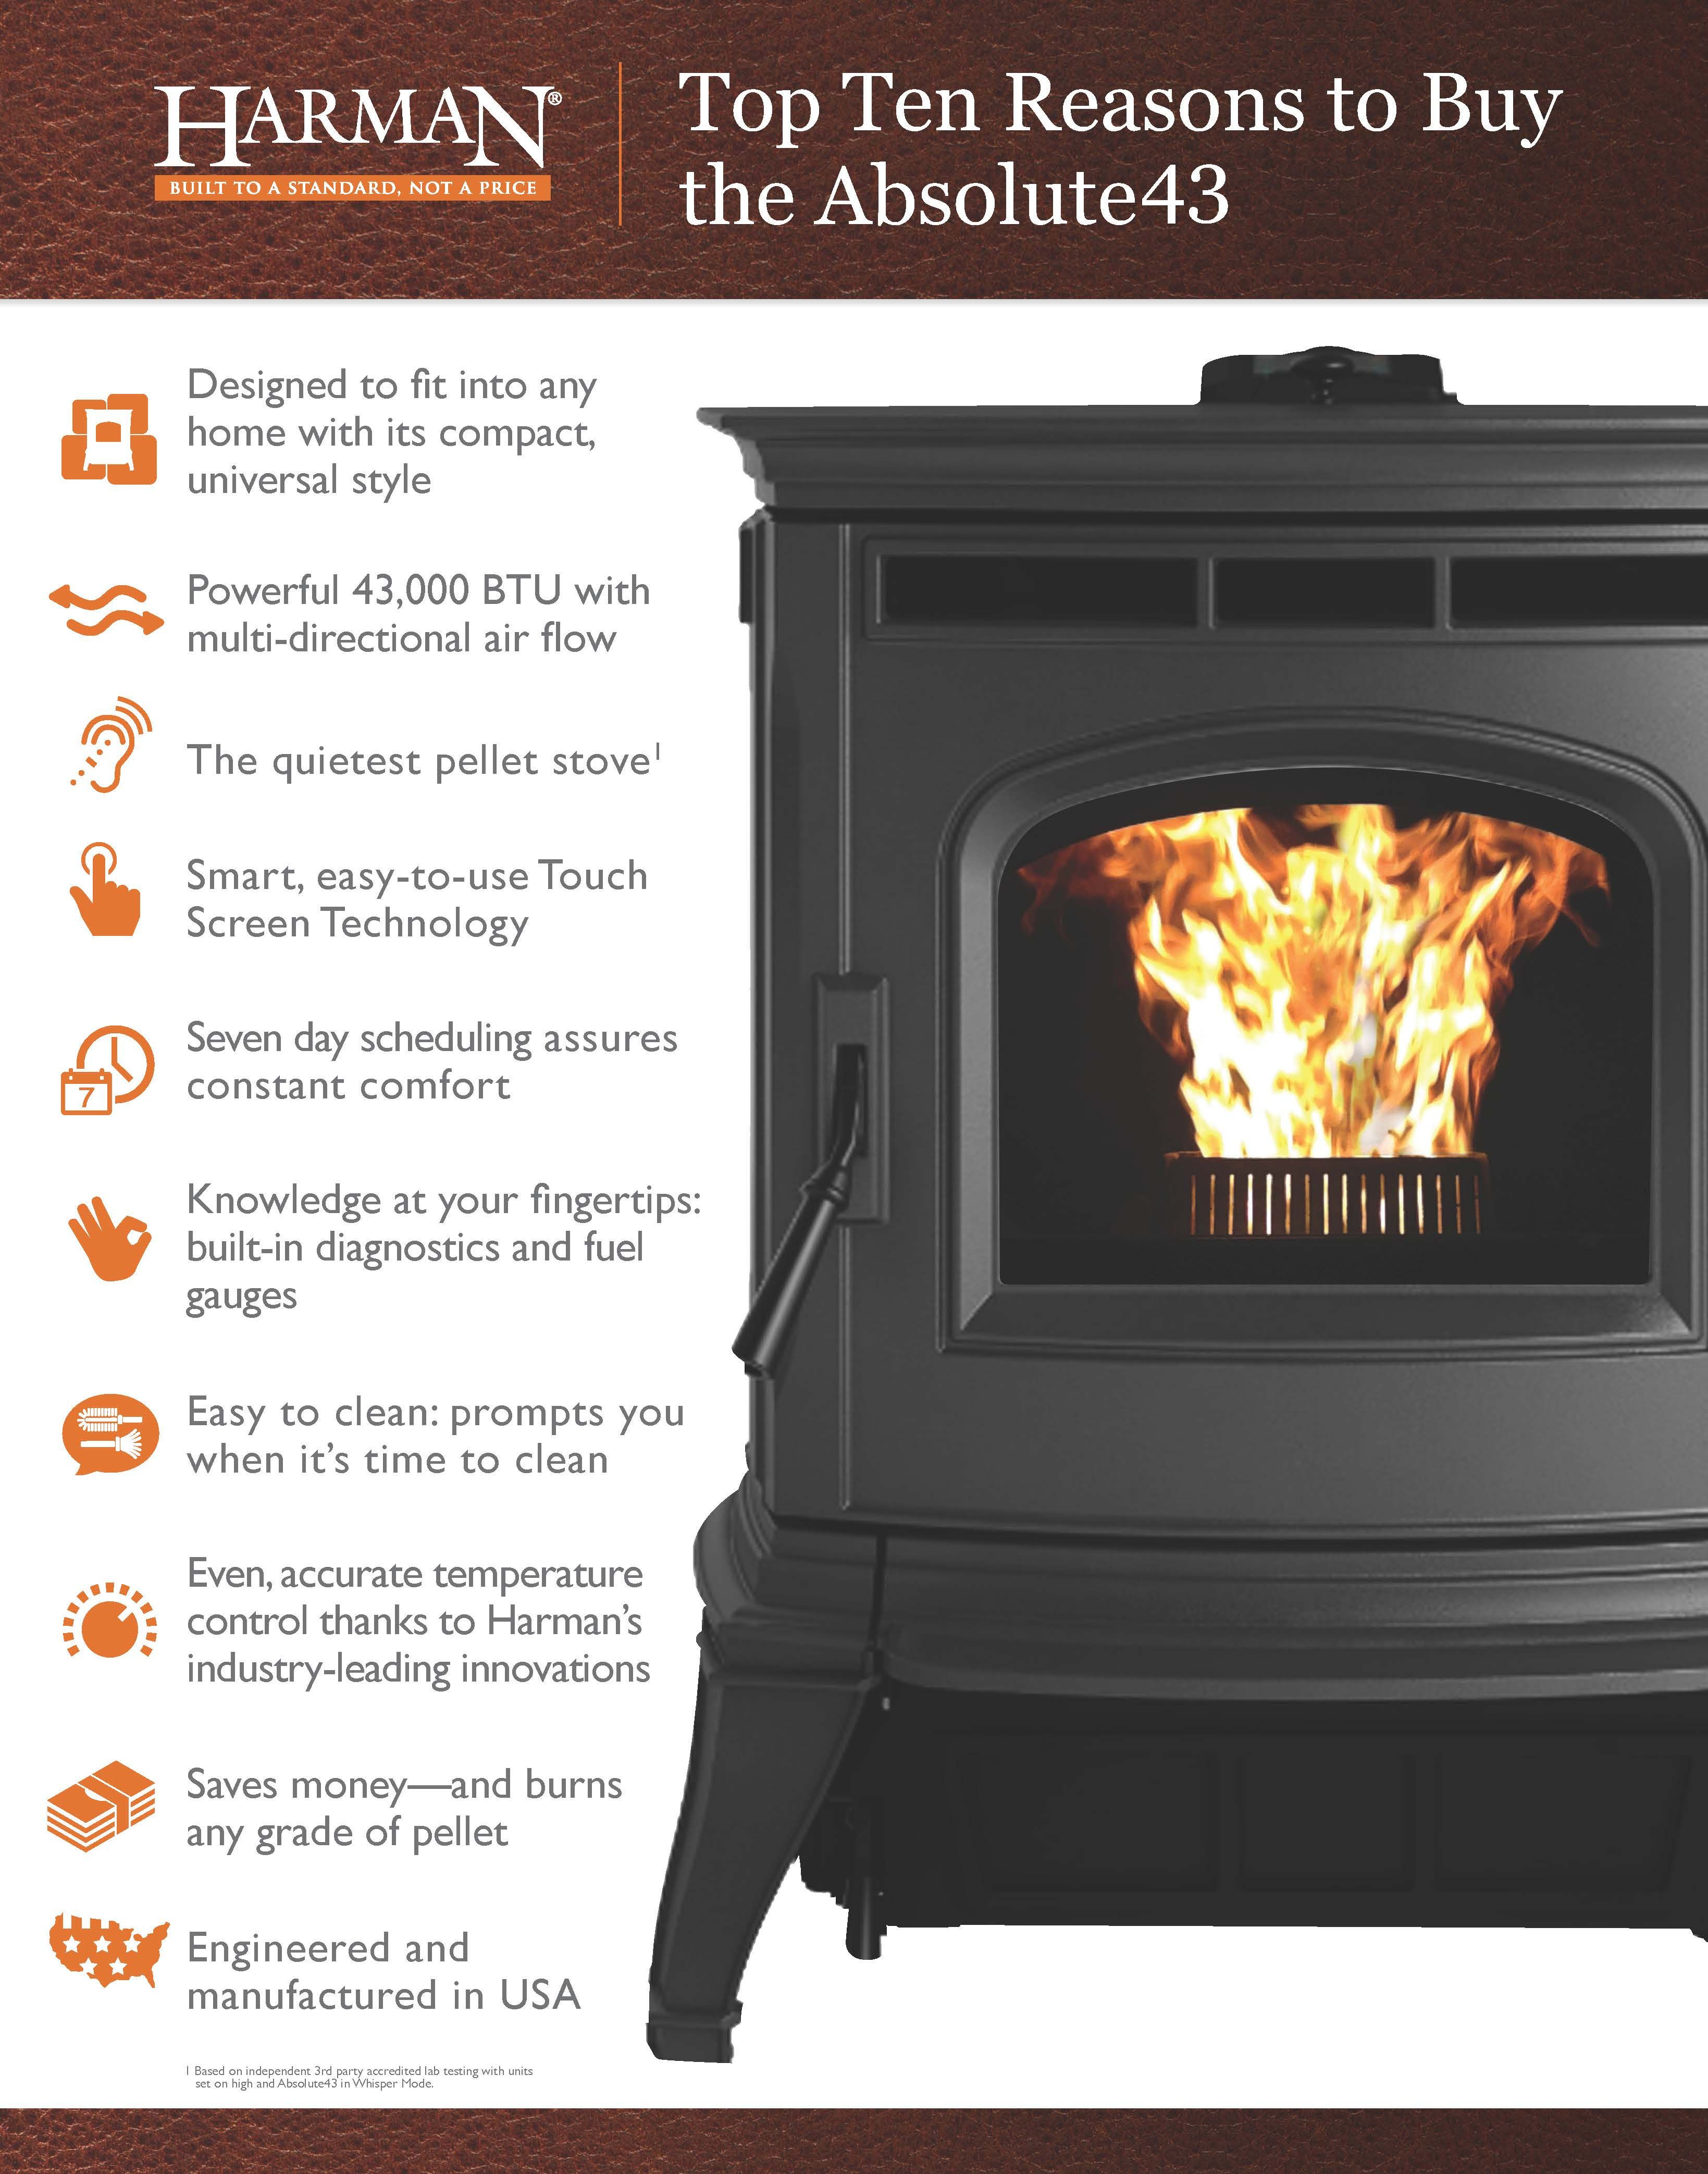 The Absolute43 Pelletstove Leads The Industry In Innovation And Accurate Heat Providing Performance And Excellence Witho With Images Pellet Stove Stove Best Pellet Stove